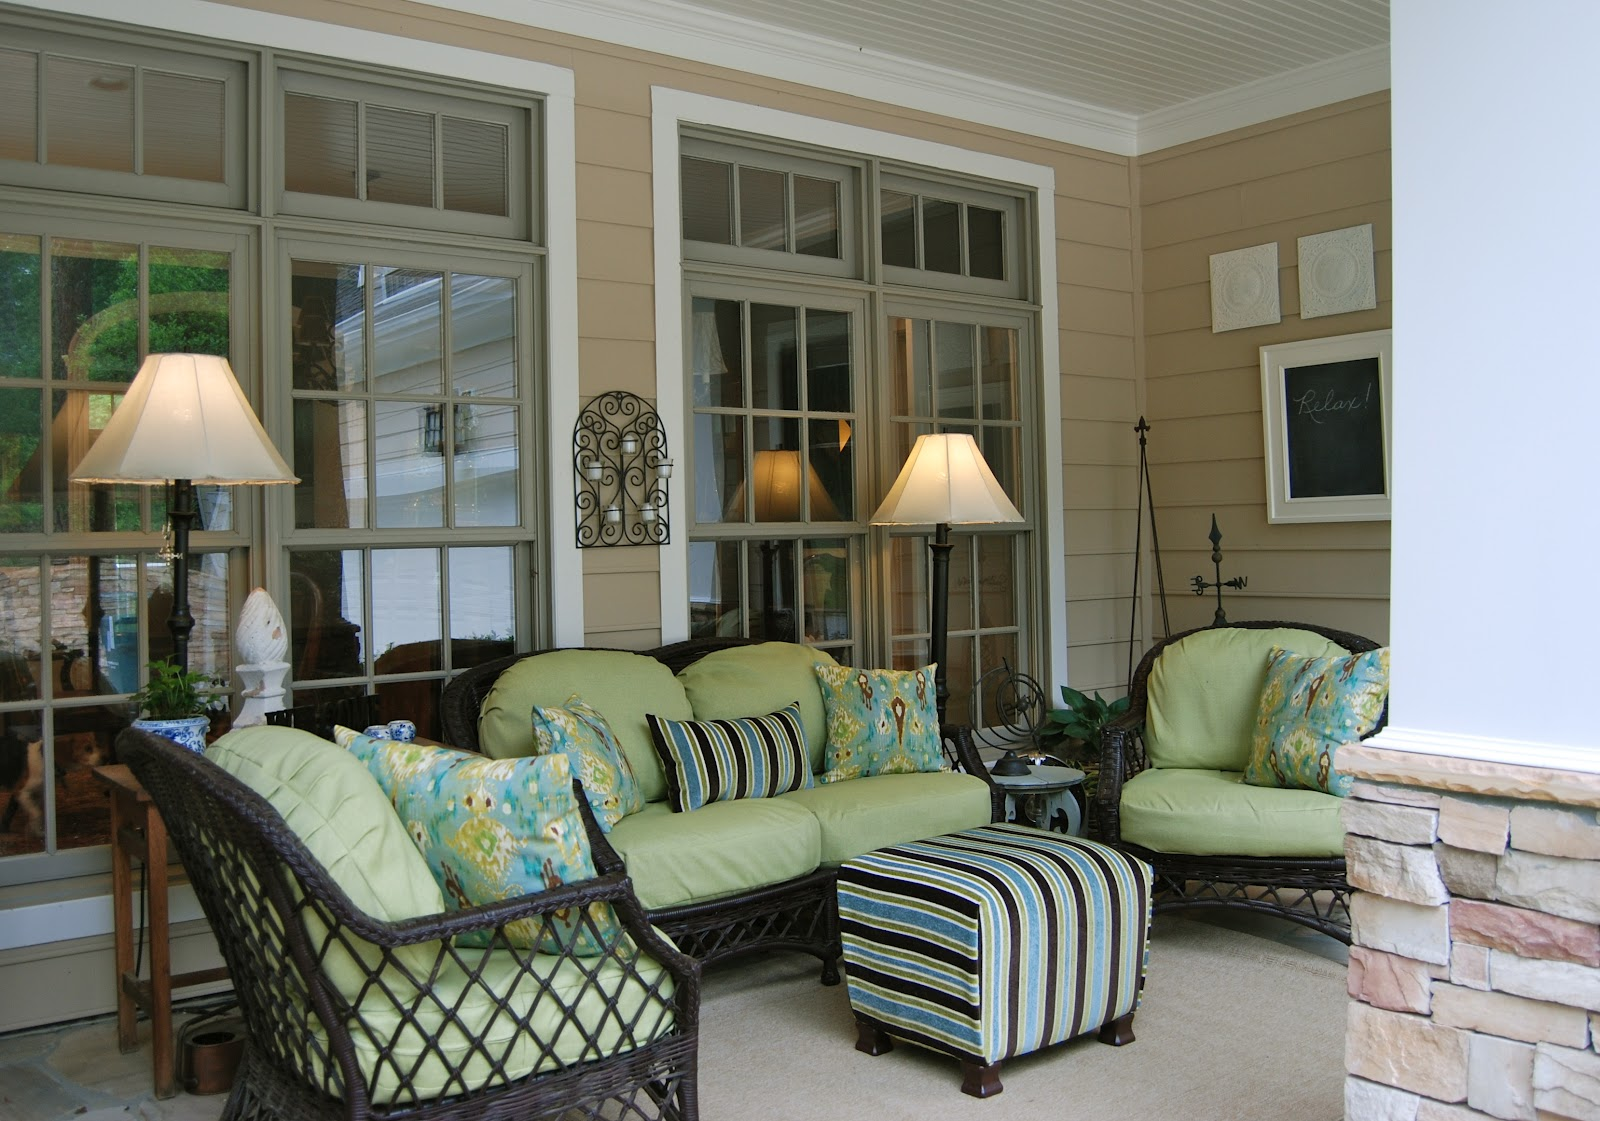 25 inspiring porch design ideas for your home - Homes front porch designs pictures ...